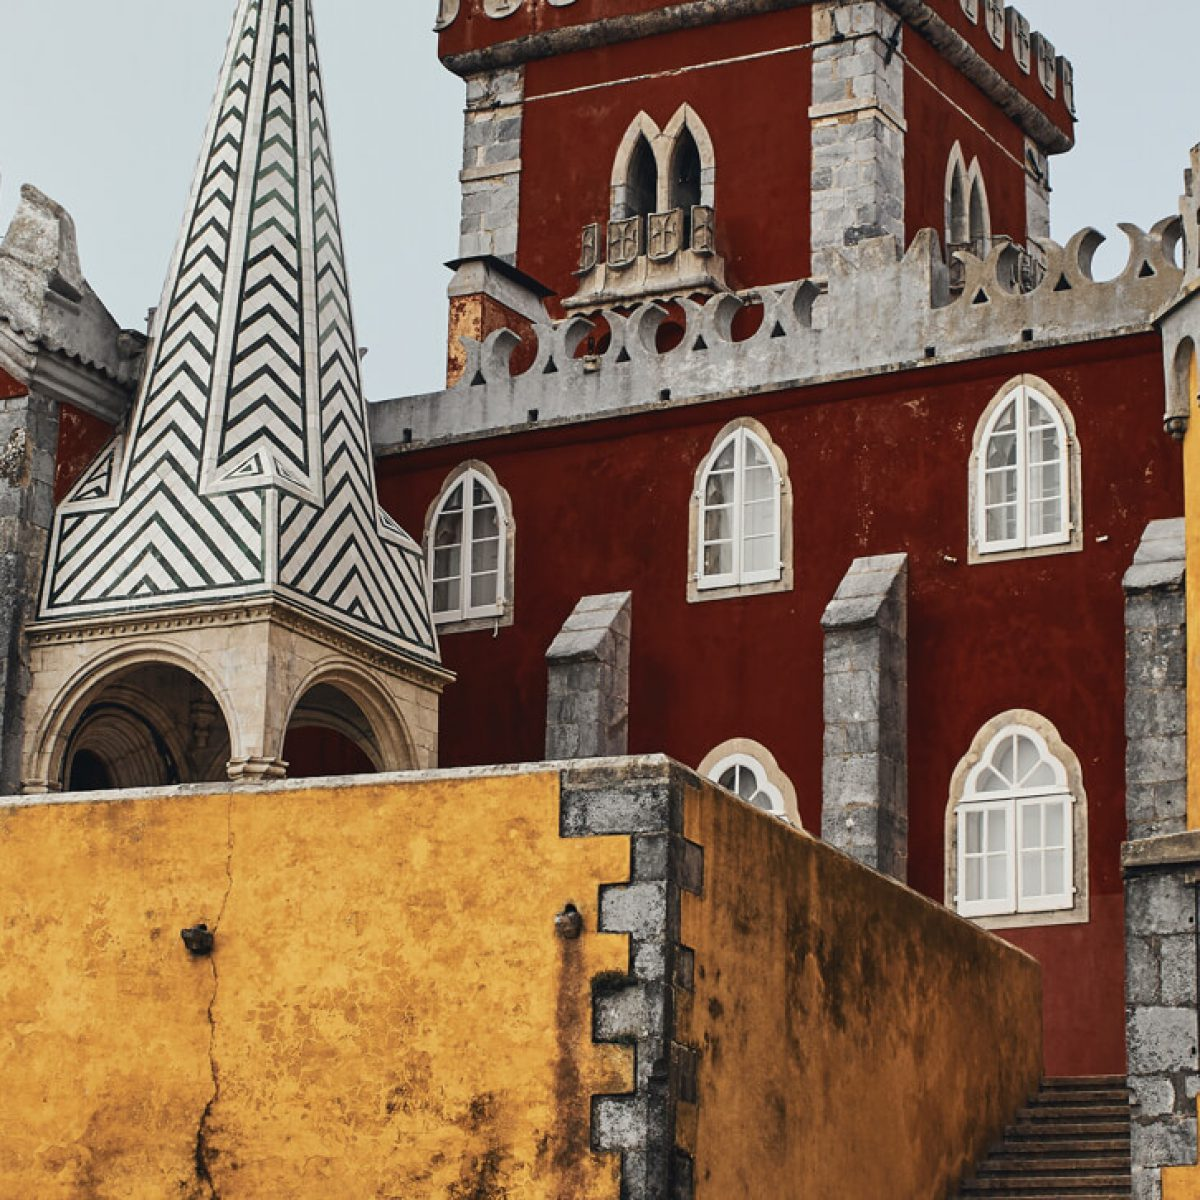 A view of Pena Palace, Sintra in Portugal